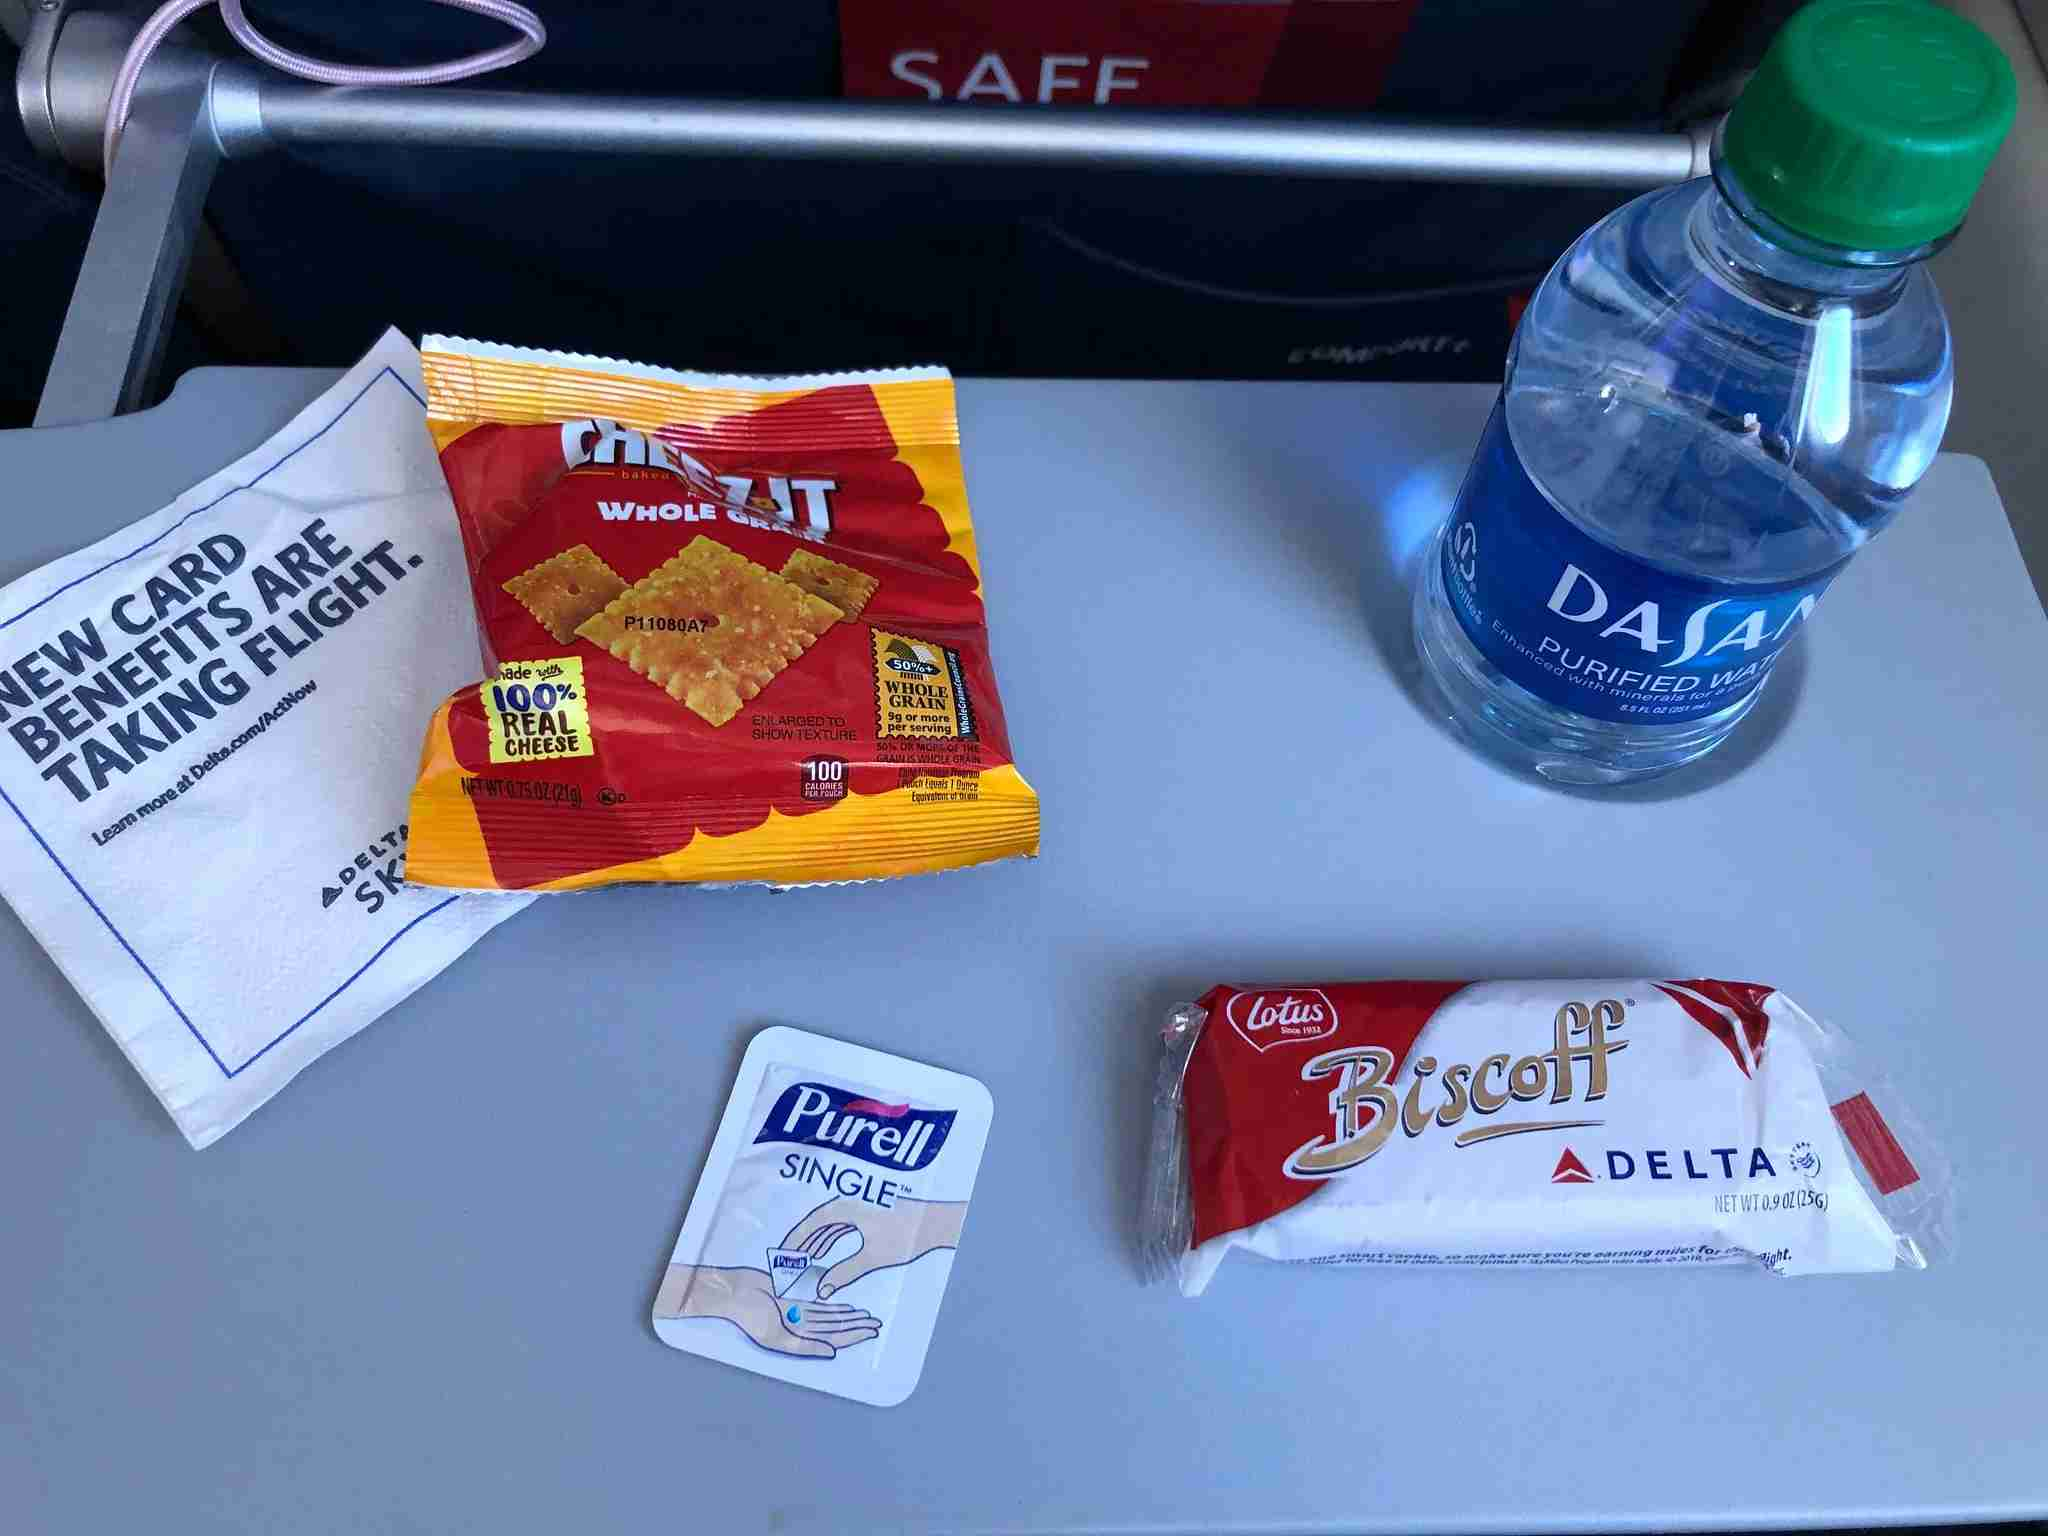 Delta service items during COVID-19 / Laura Motta / The Points Guy